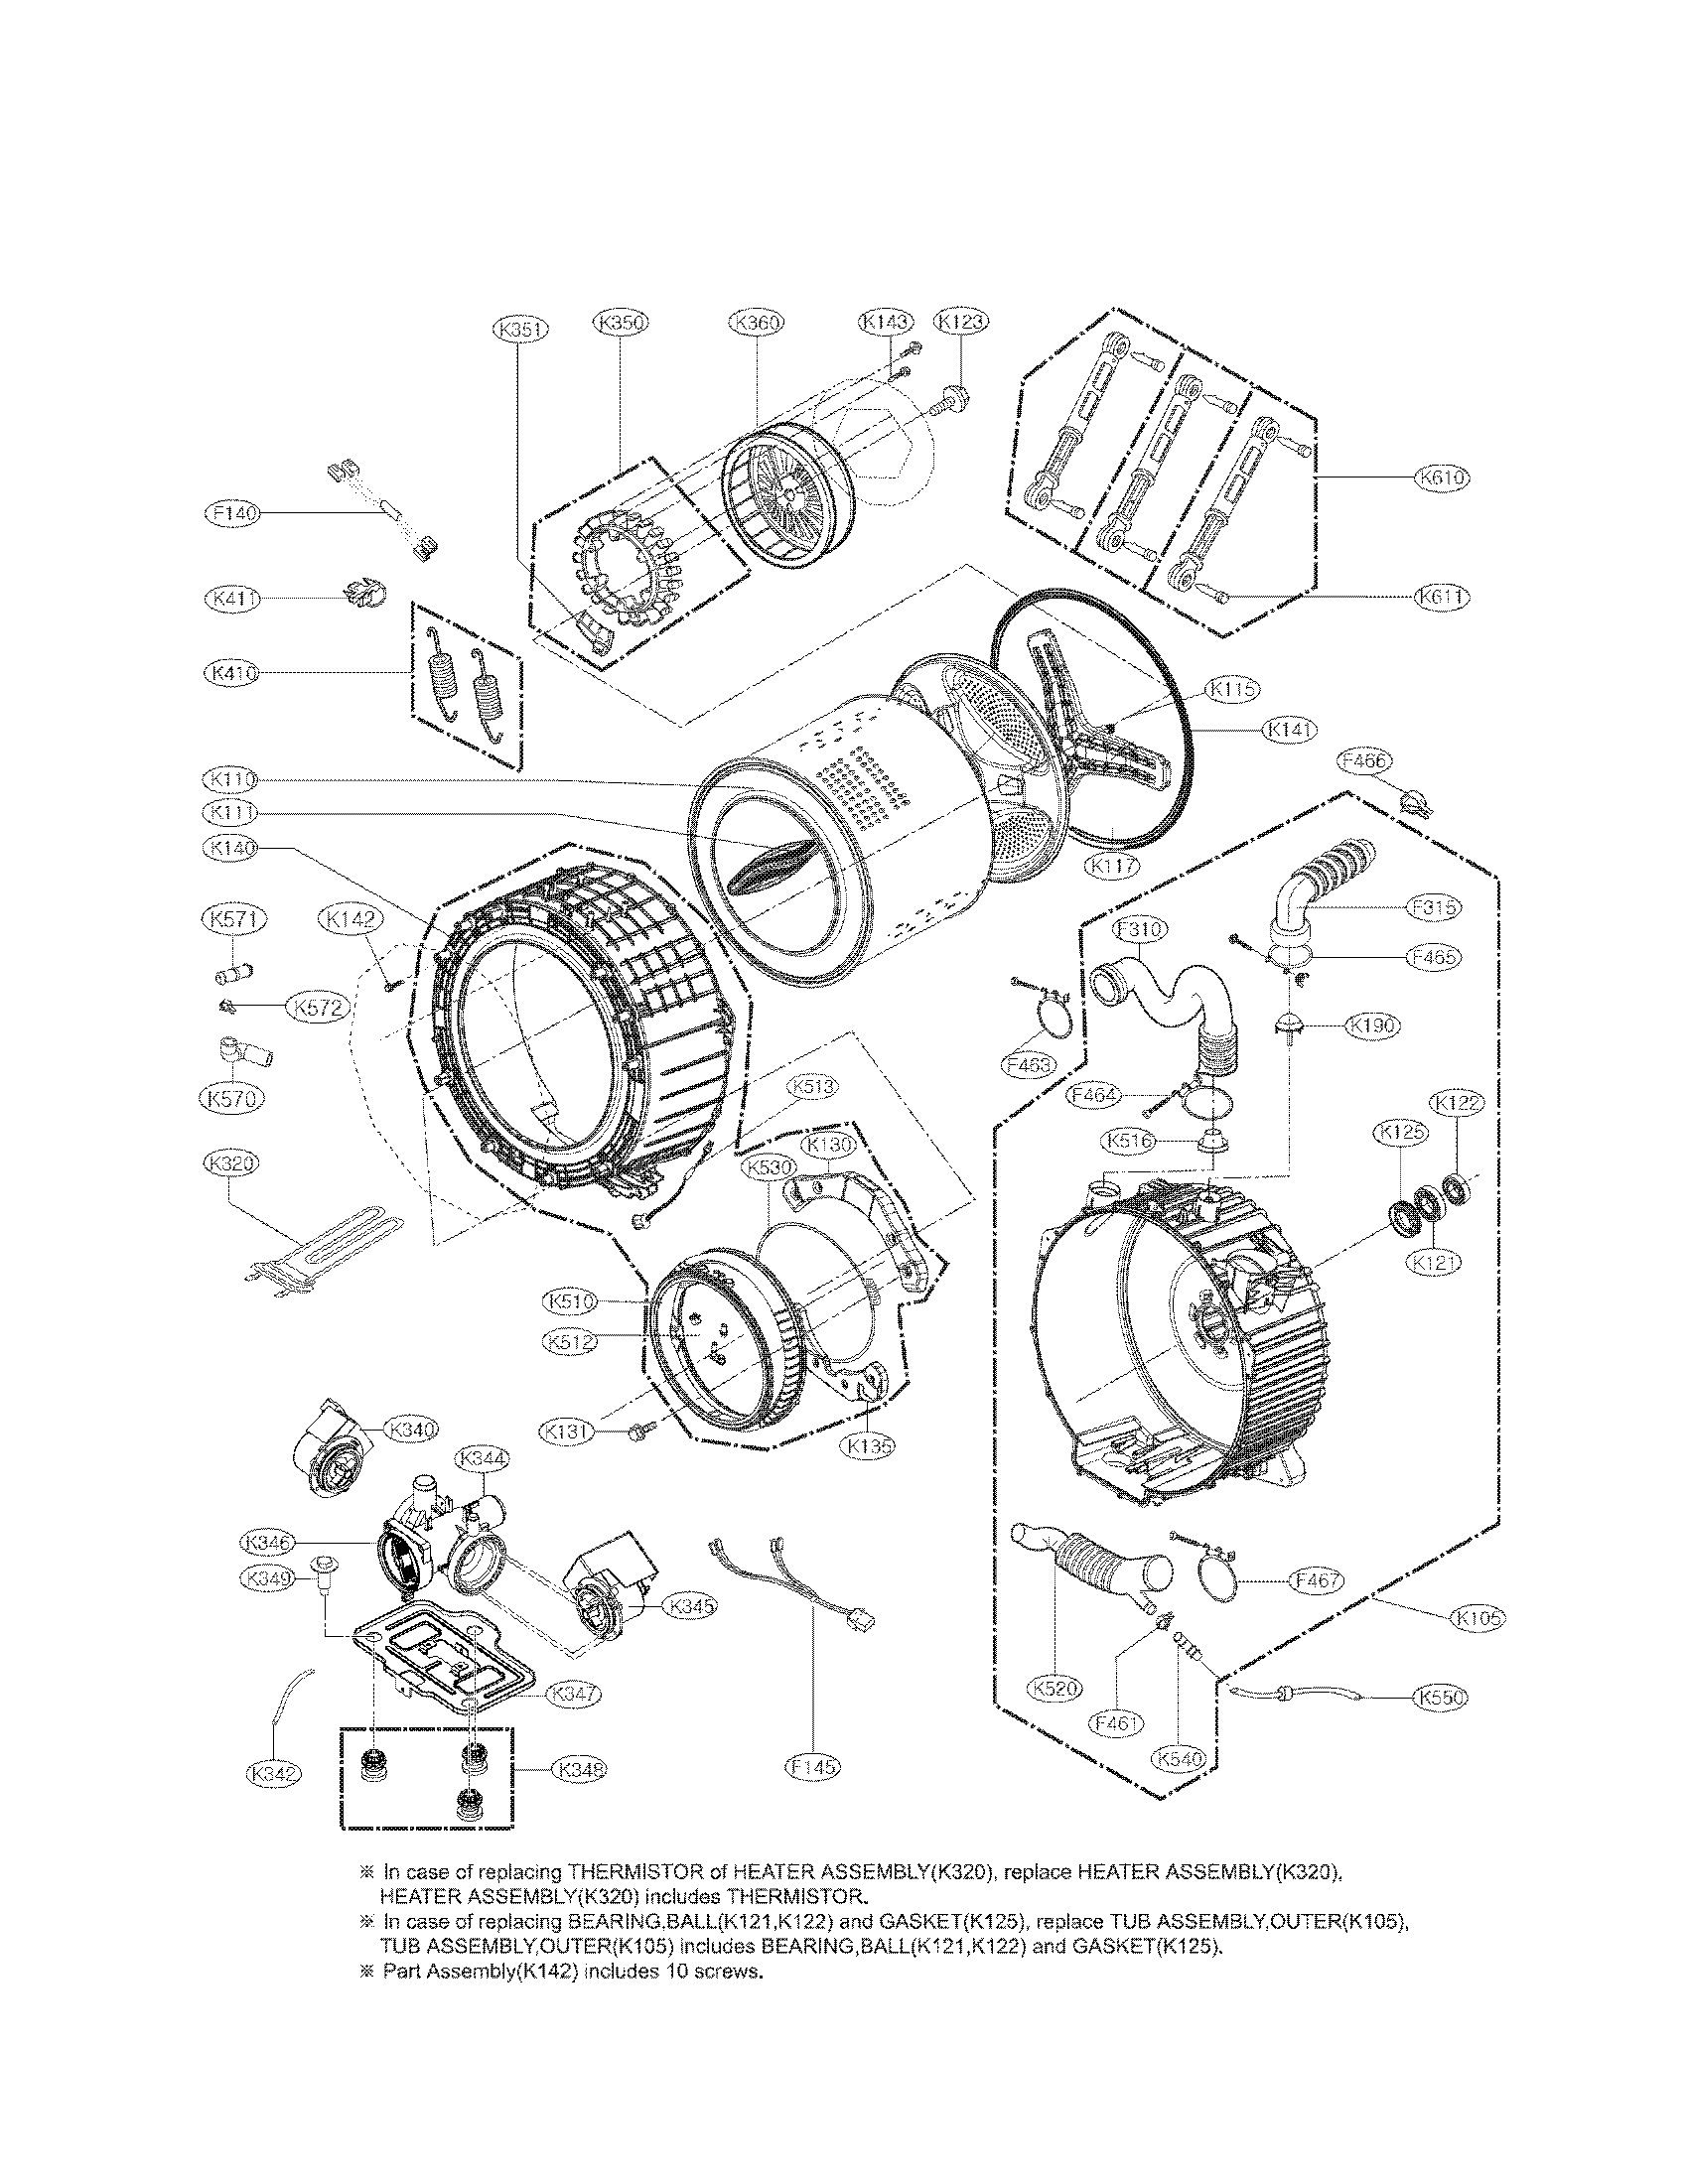 Lg model WM8000HVA residential washers genuine parts